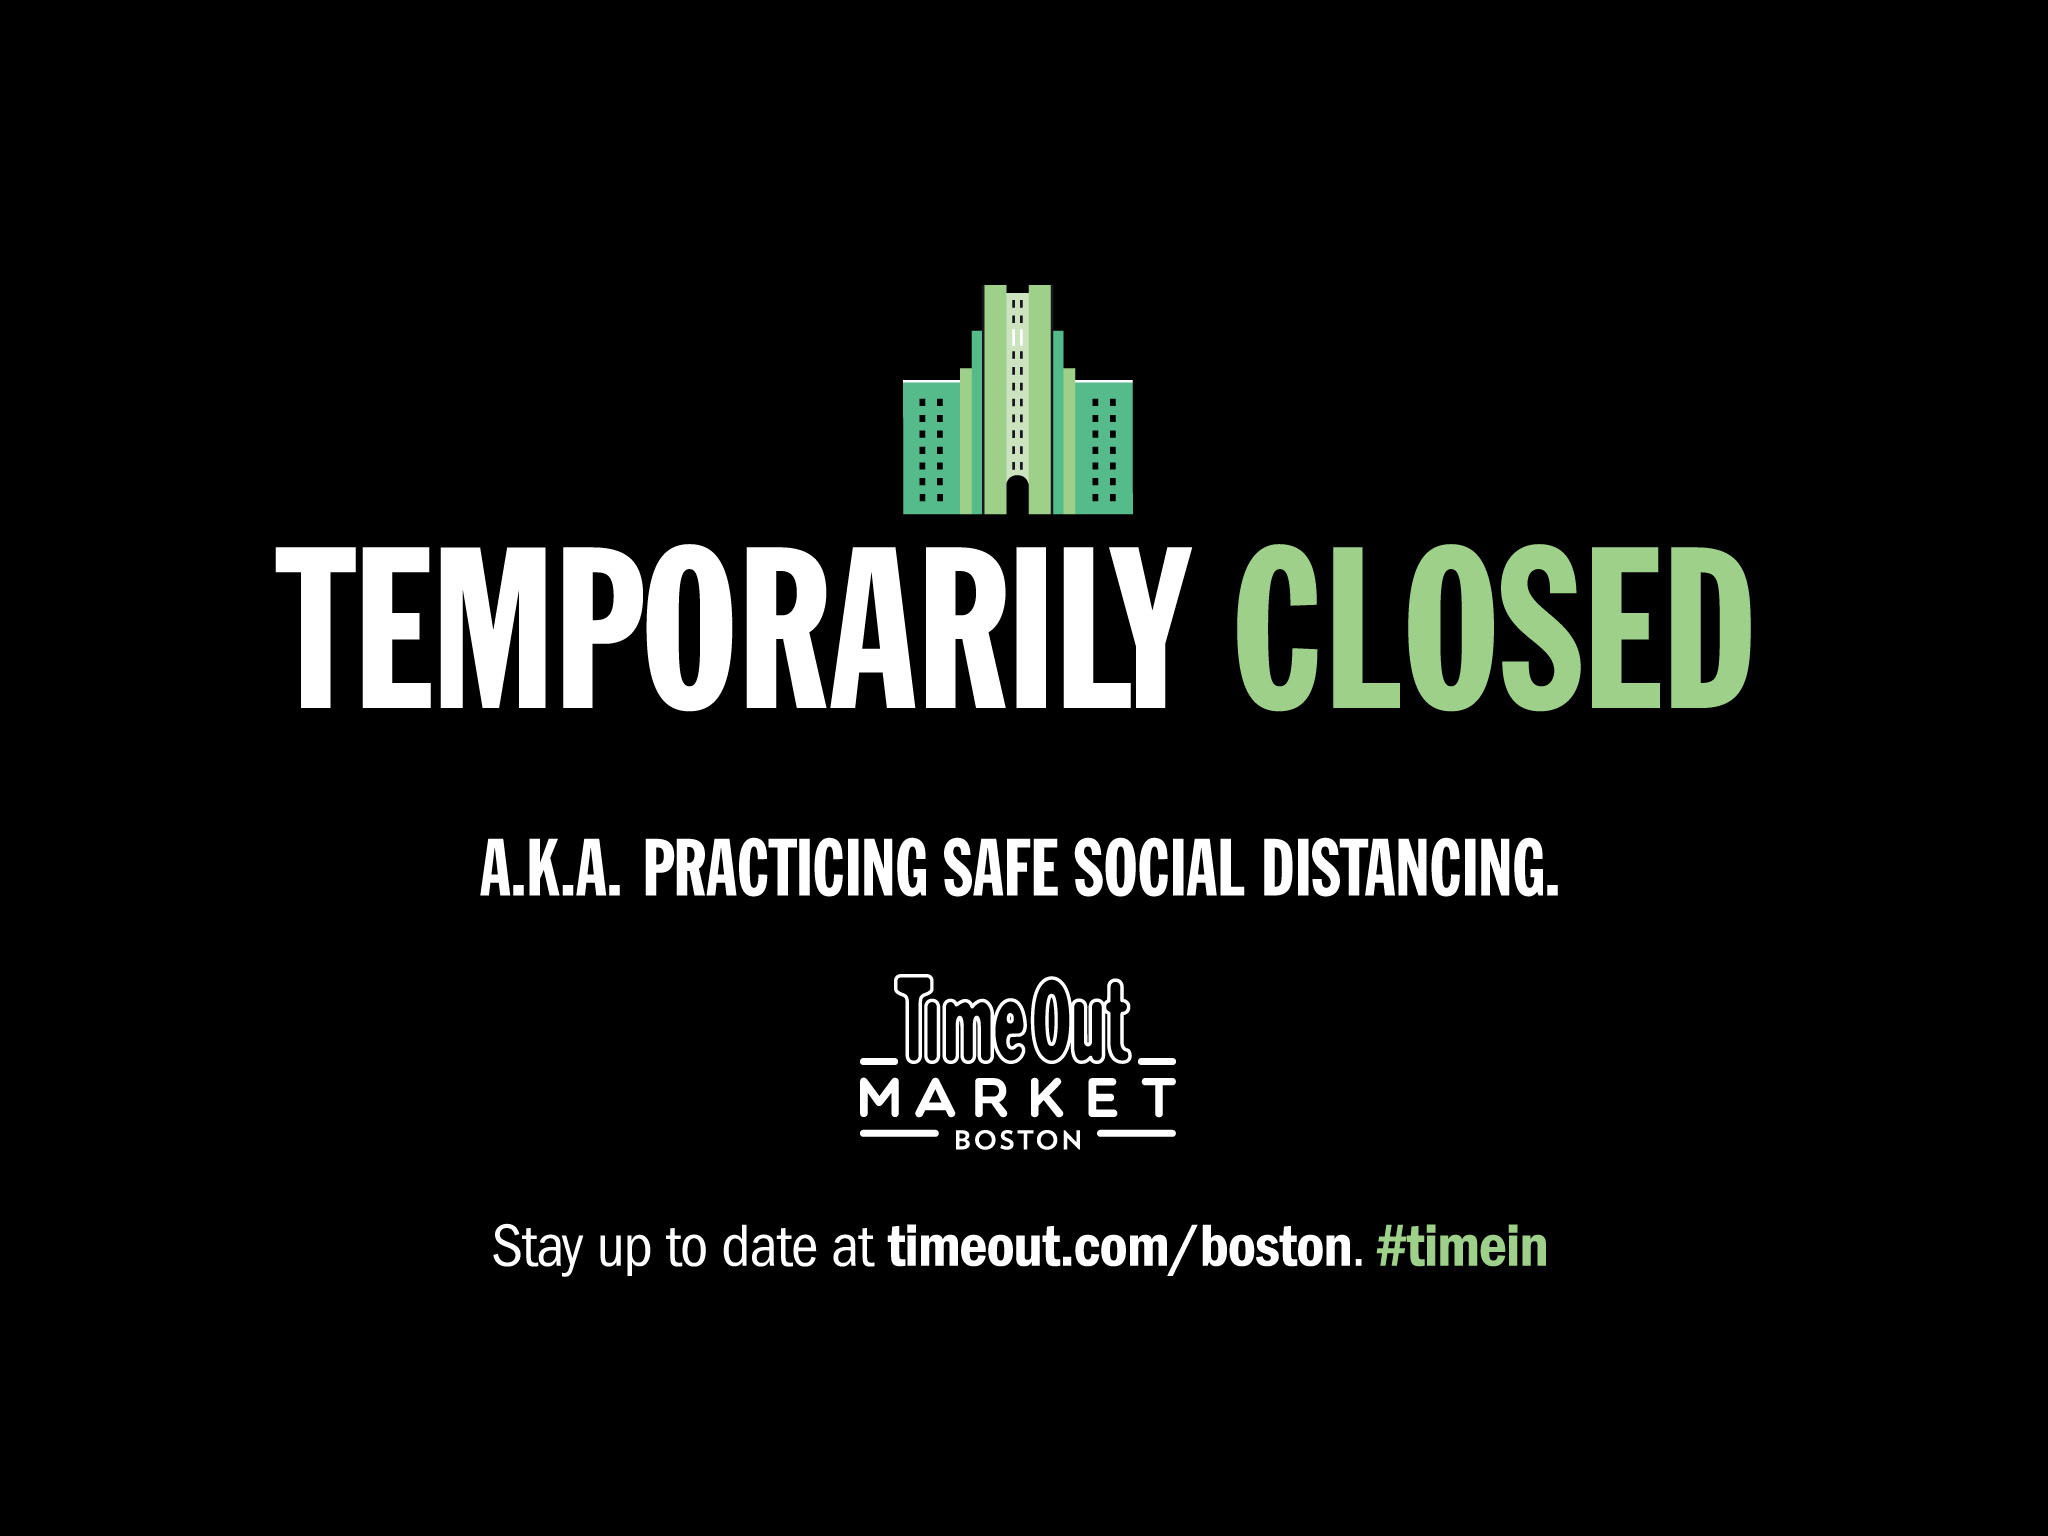 Time Out Market Boston is temporarily closed